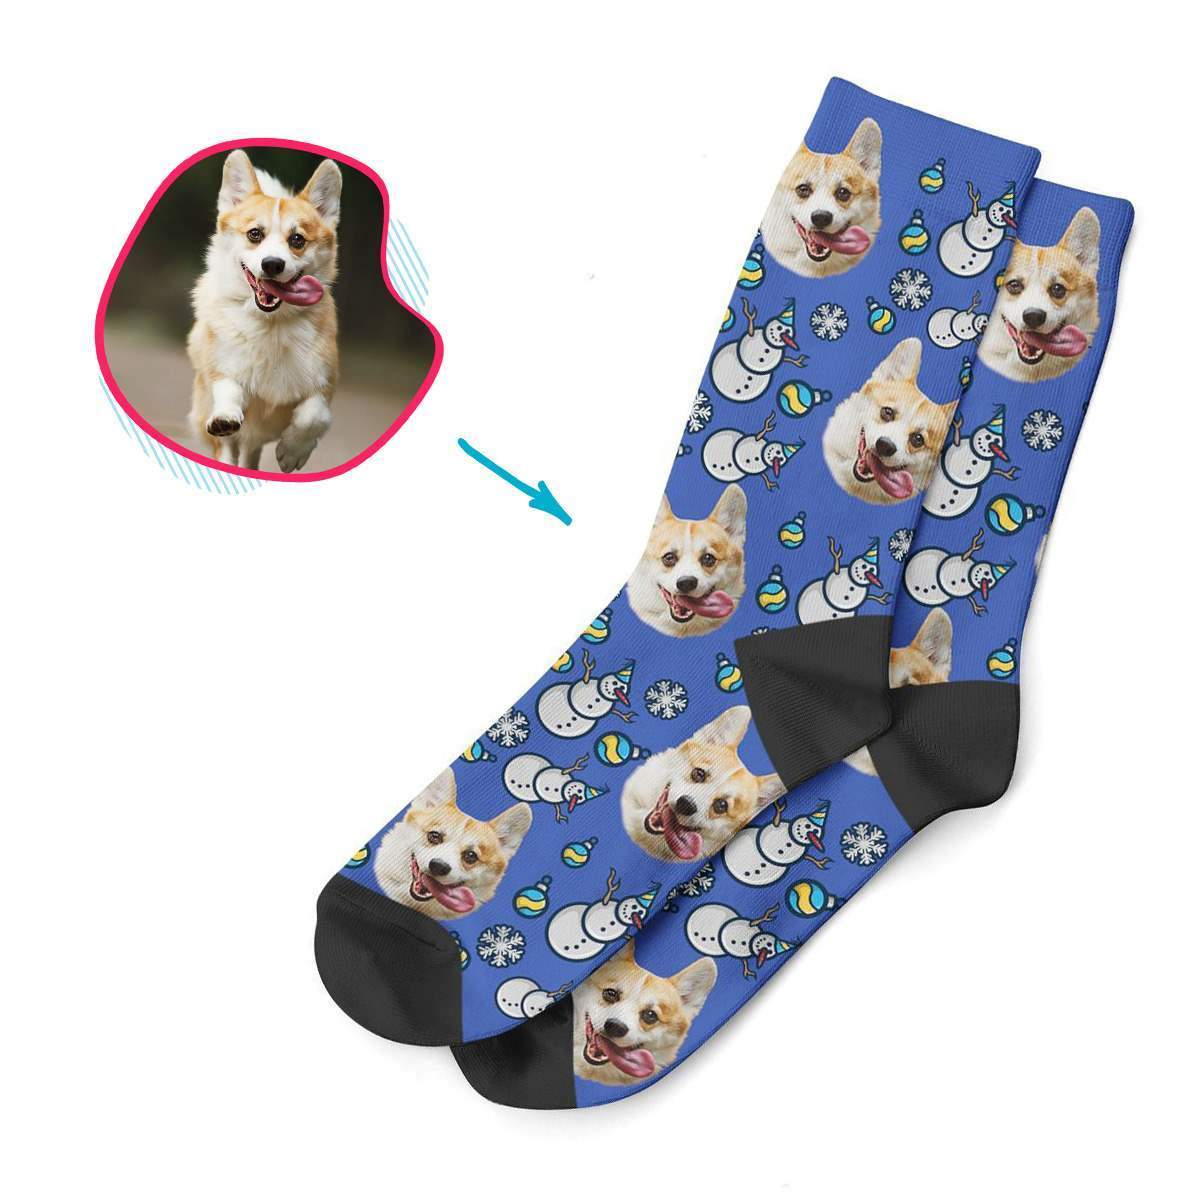 darkblue Snowman socks personalized with photo of face printed on them